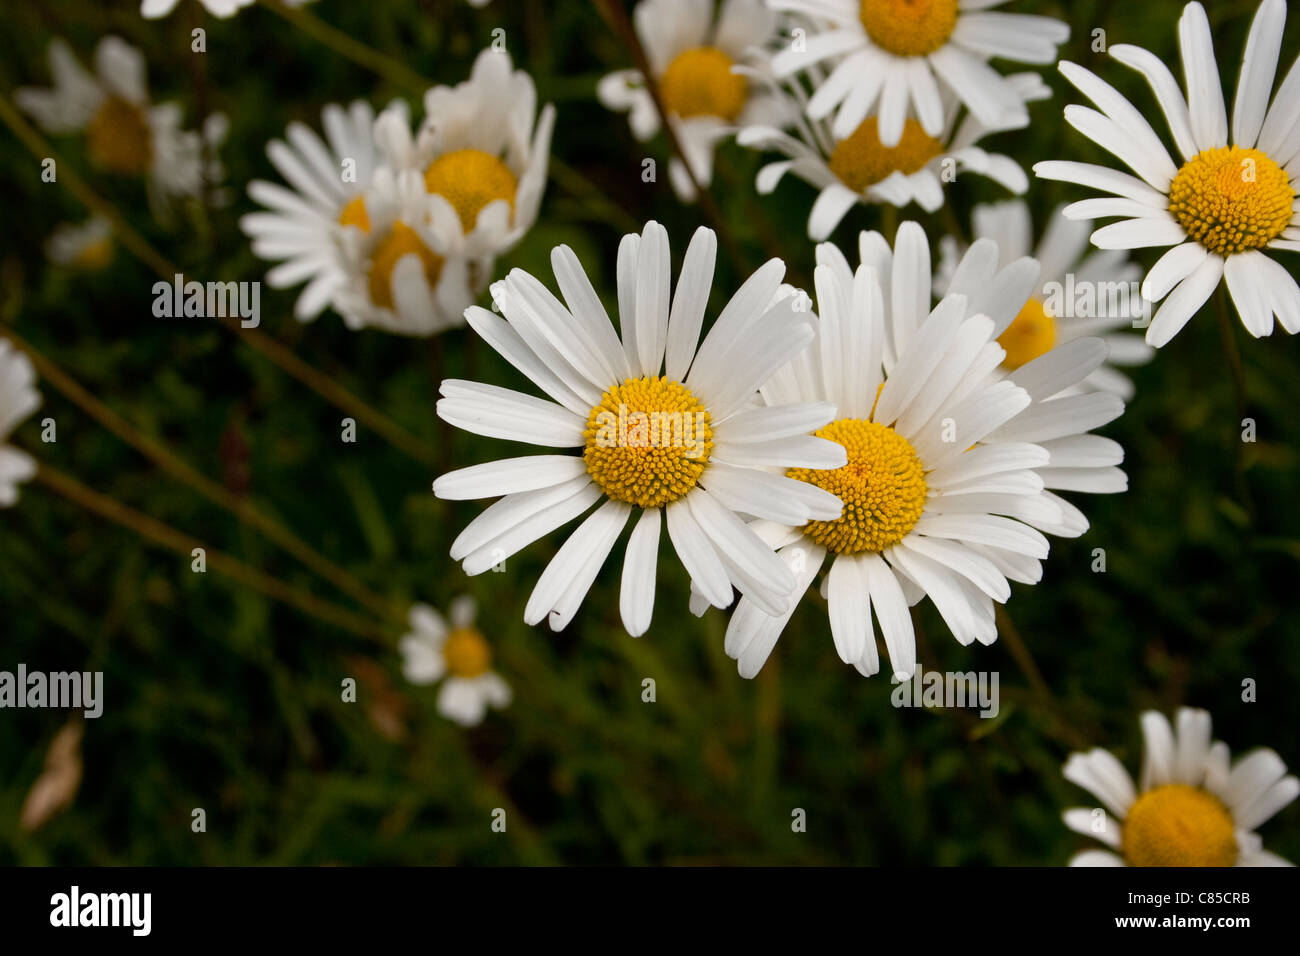 Daisy Close Up Single Head Bloom Flower Petals White Yellow Centre